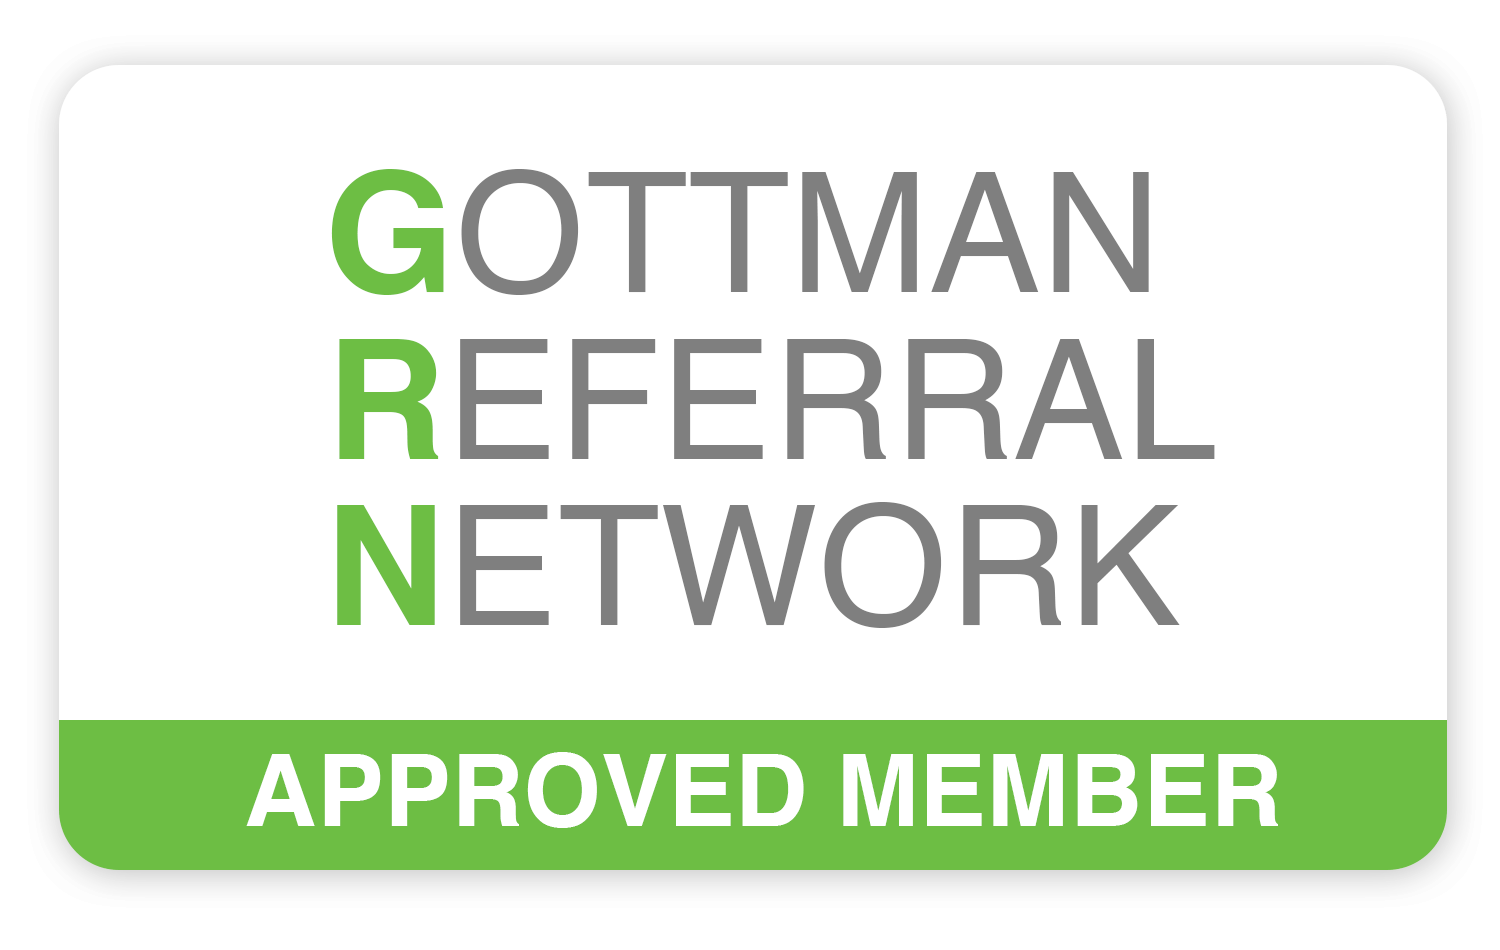 Ruairí Osborne's profile on the Gottman Referral Network